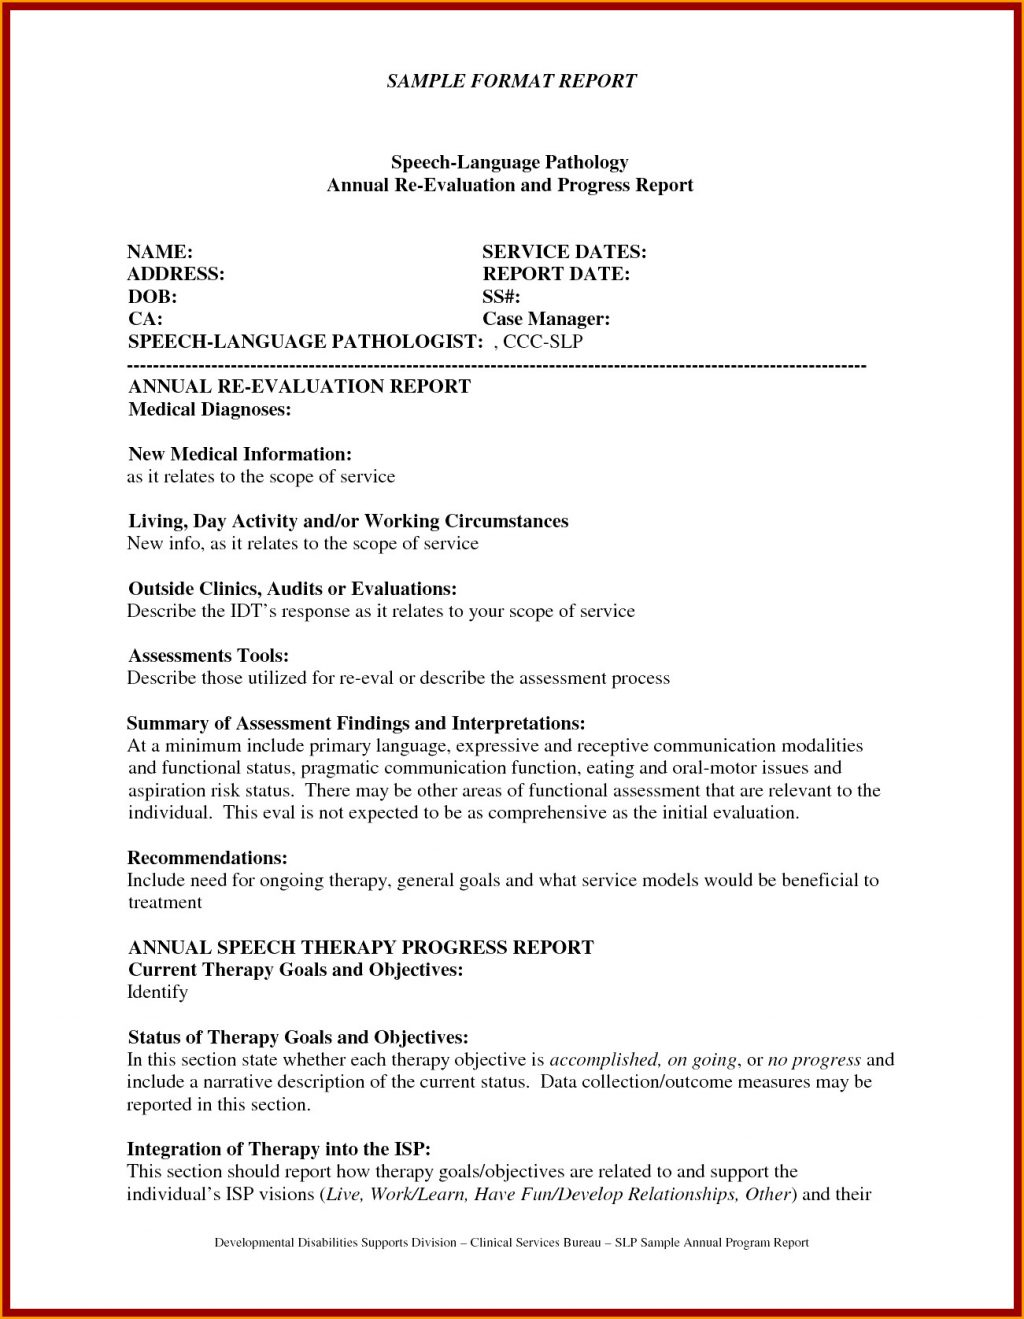 Monitoring And Evaluation Report Writing Template Cobsiateny Regarding Monitoring And Evaluation Report Writing Template